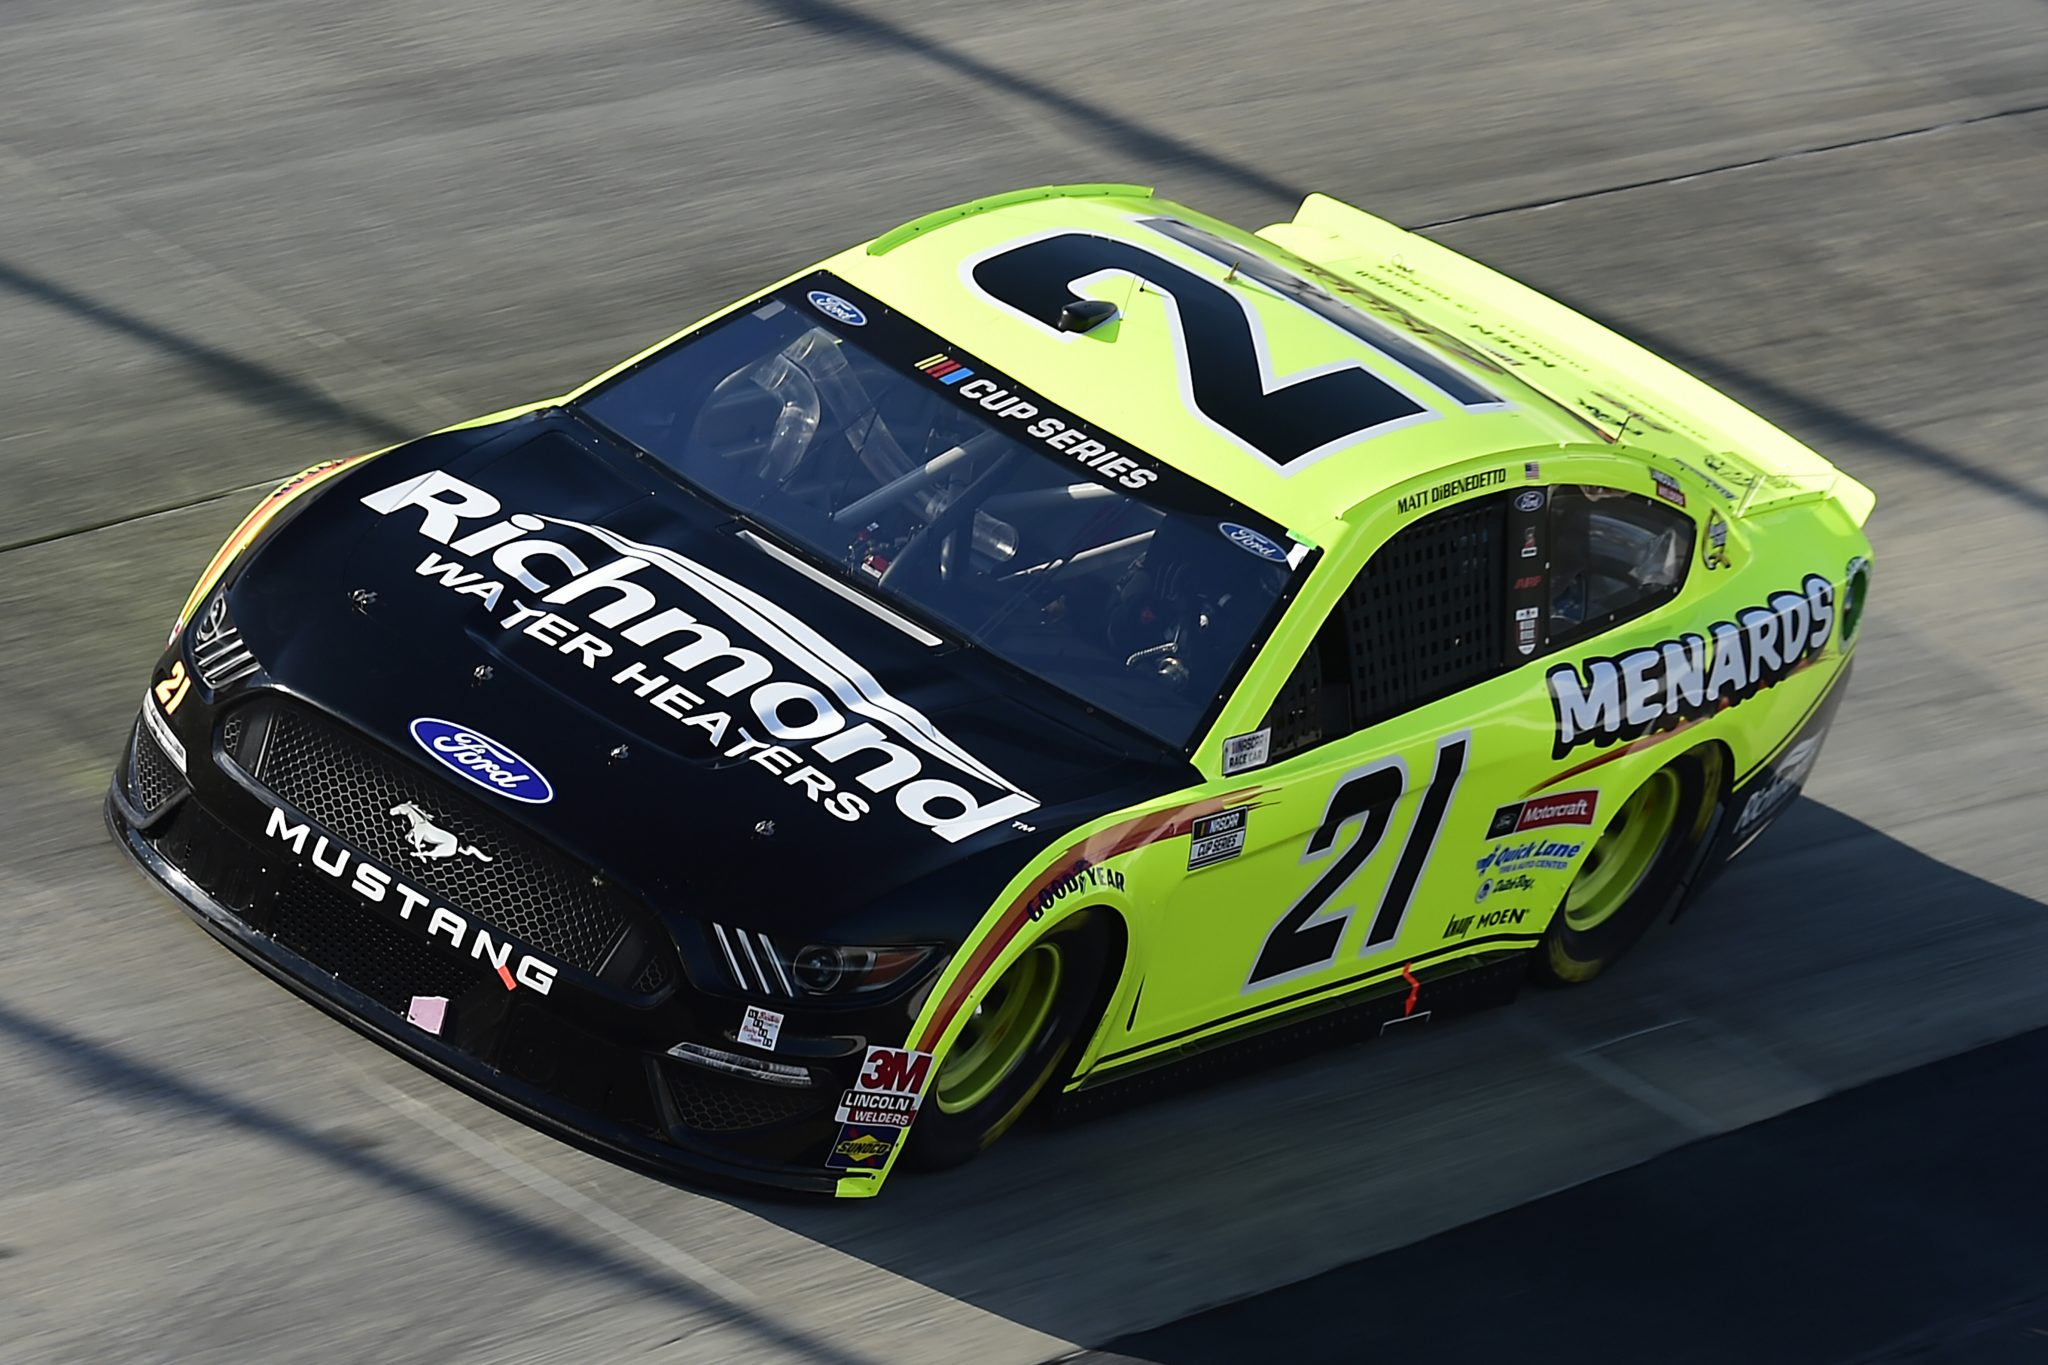 DOVER, DELAWARE - AUGUST 23: Matt DiBenedetto, driver of the #21 Menards/Monster Energy Ford, drives during the NASCAR Cup Series Drydene 311 at Dover International Speedway on August 23, 2020 in Dover, Delaware. (Photo by Jared C. Tilton/Getty Images) | Getty Images